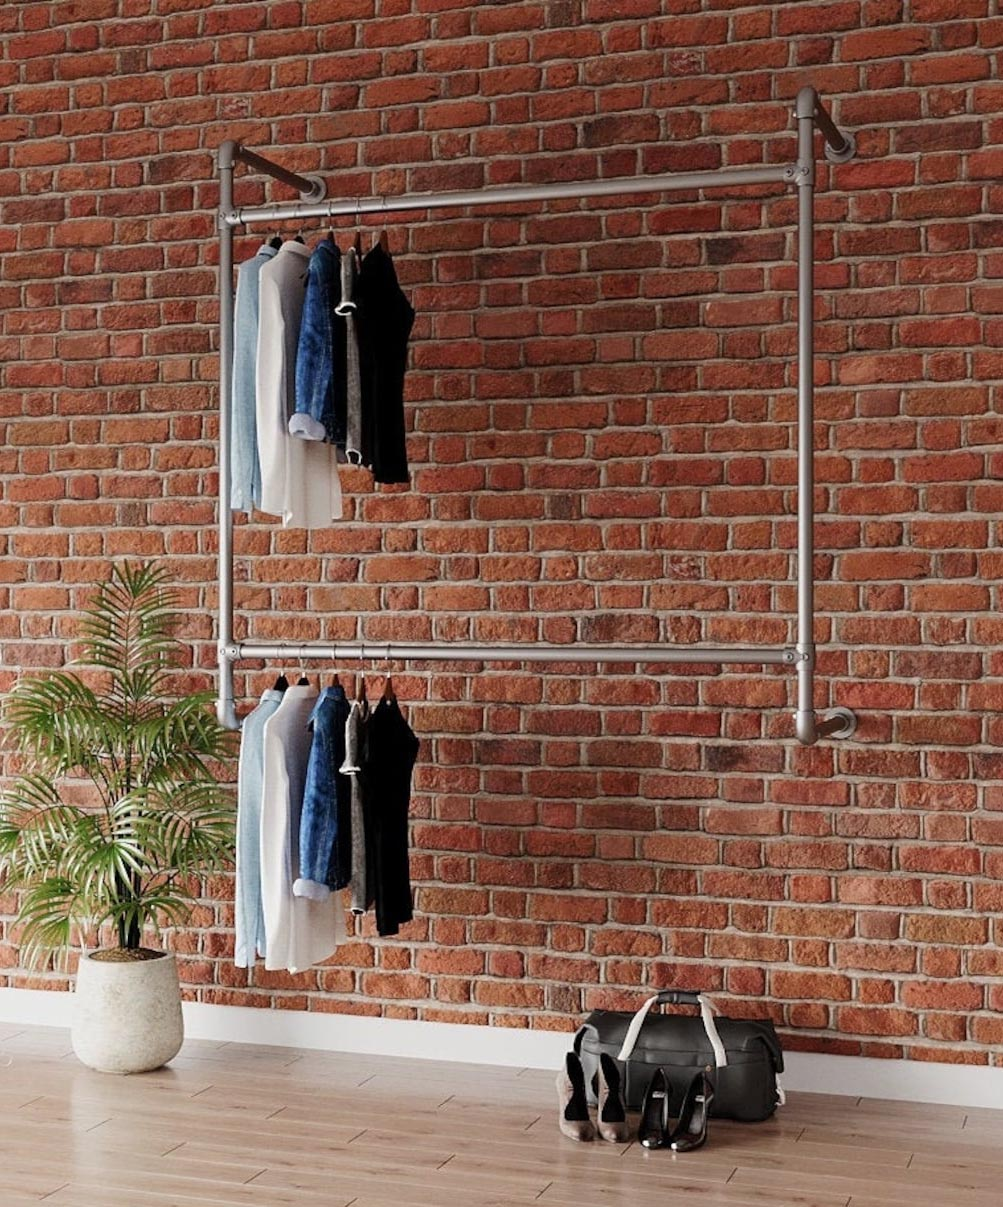 Storage Idea - Modern wall mounted industrial clothes rack.